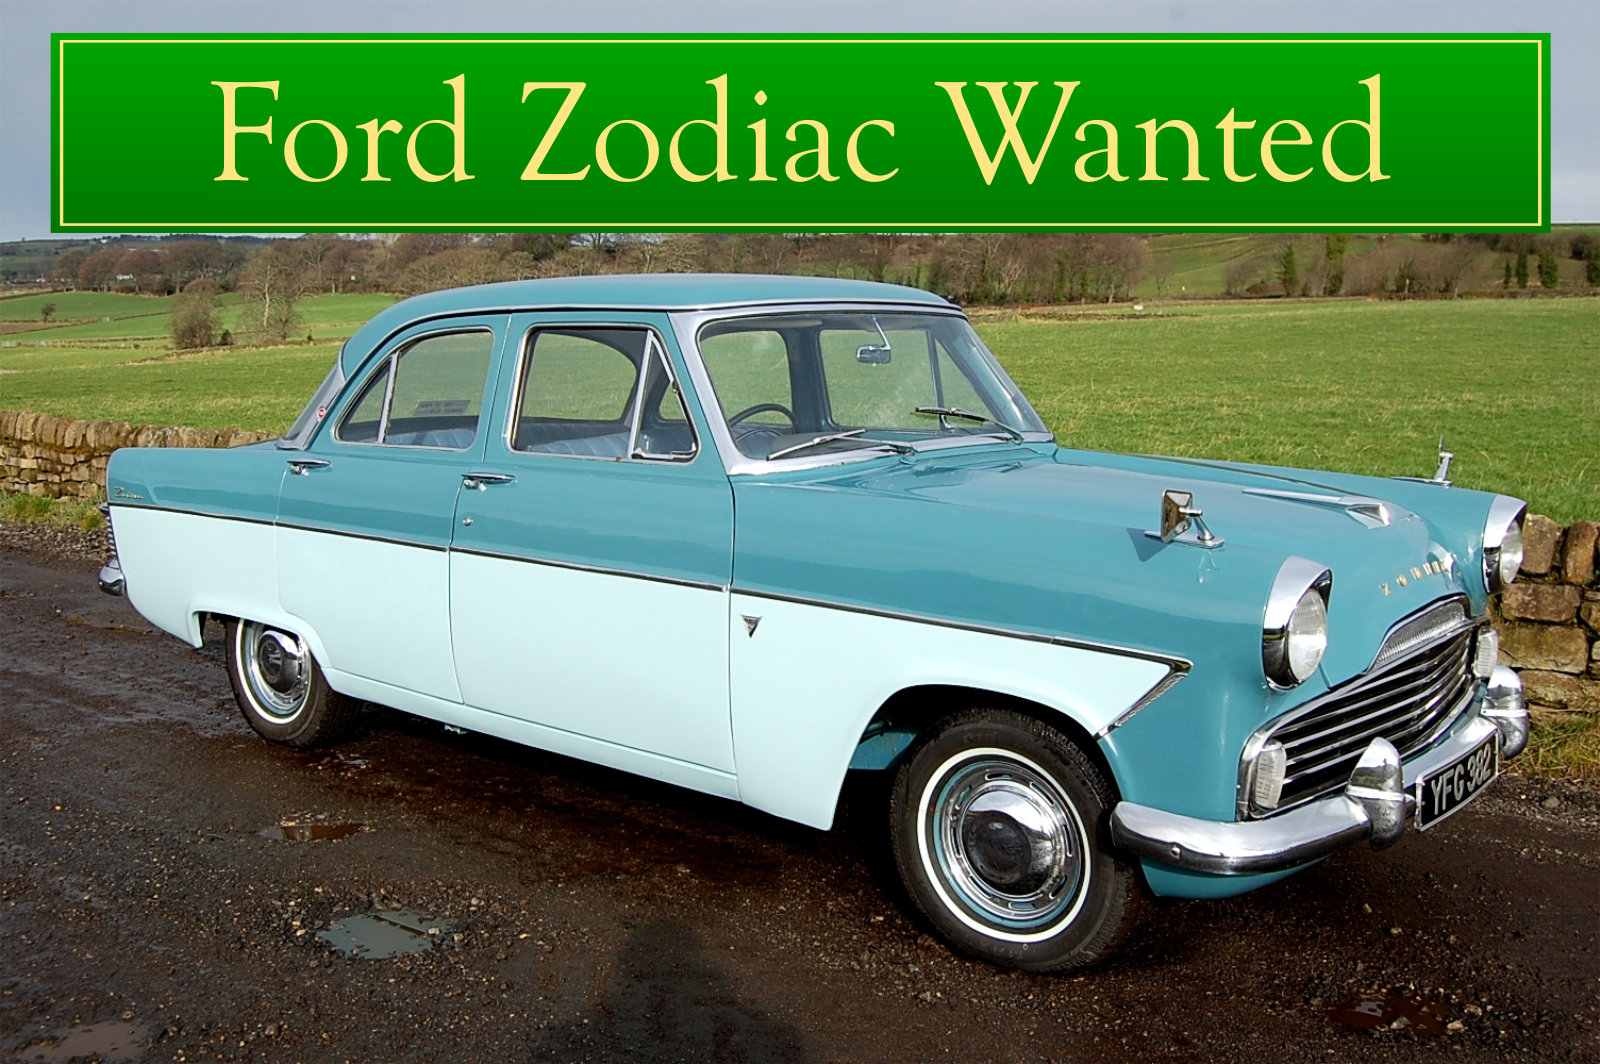 VAUXHALL VELOX WANTED, CLASSIC CARS WANTED, INSTANT PAYMENT Wanted (picture 5 of 6)